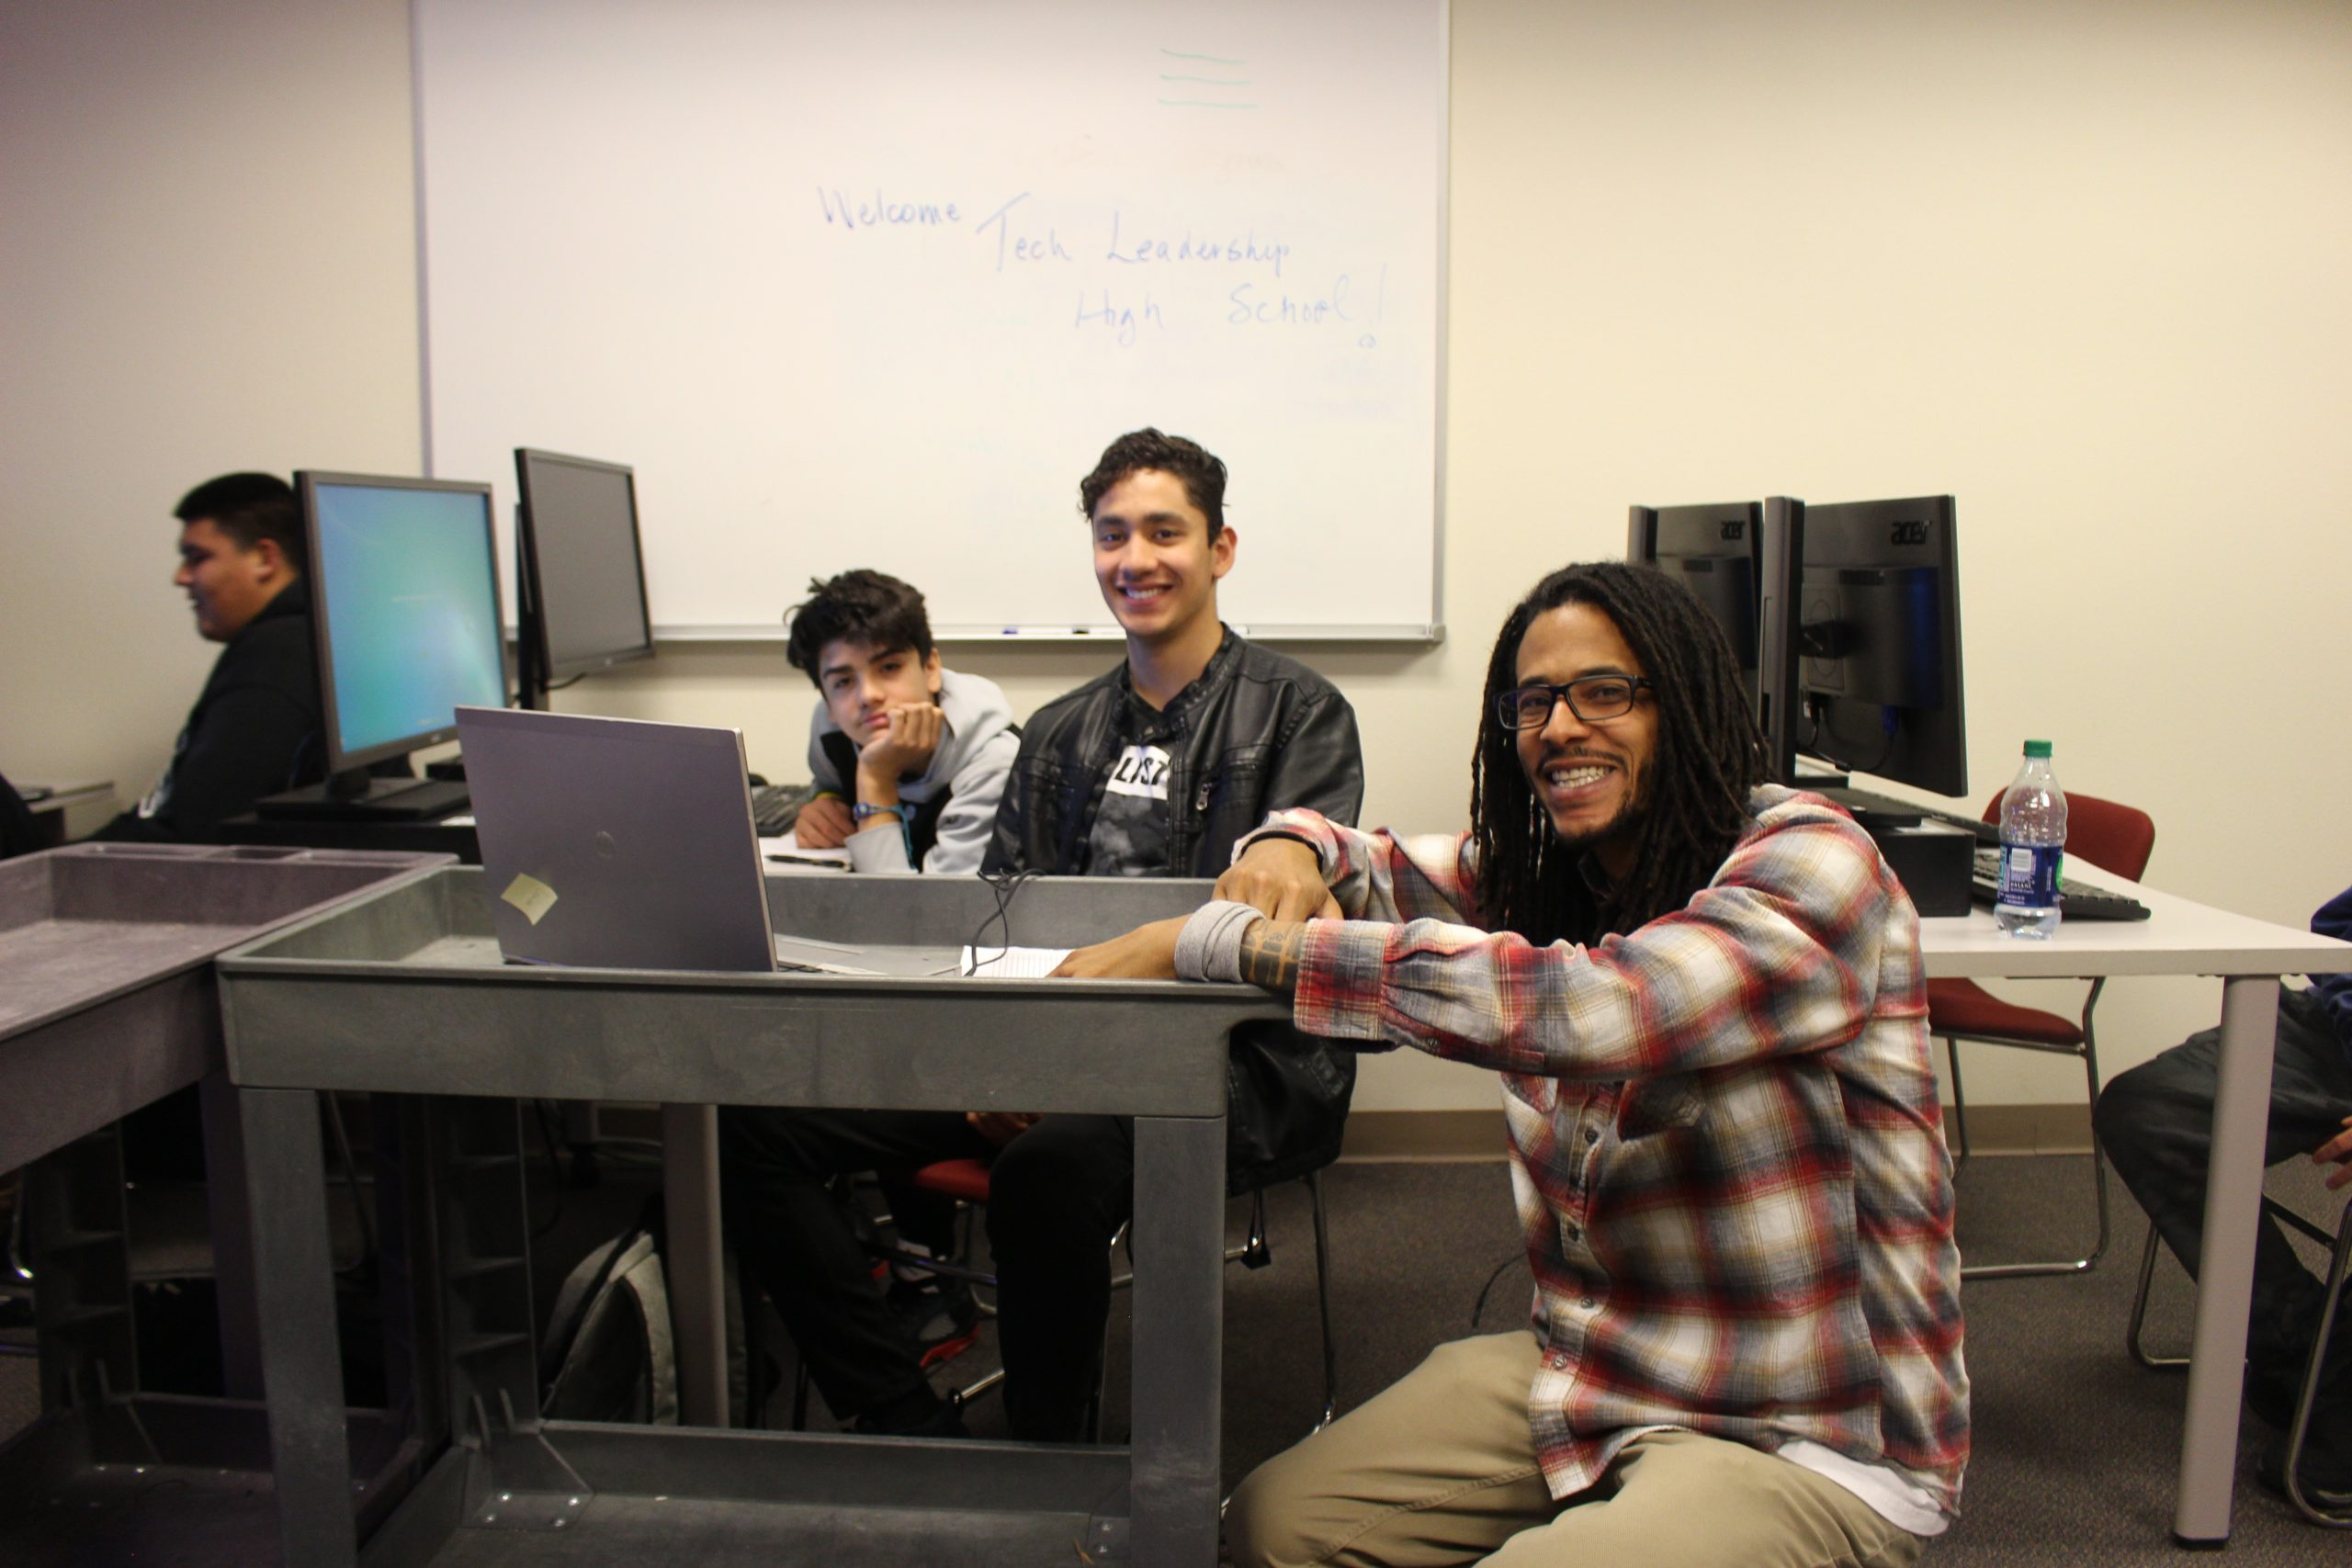 A man knells down and smiles next to two students working on computers. He is helping train them on technology.